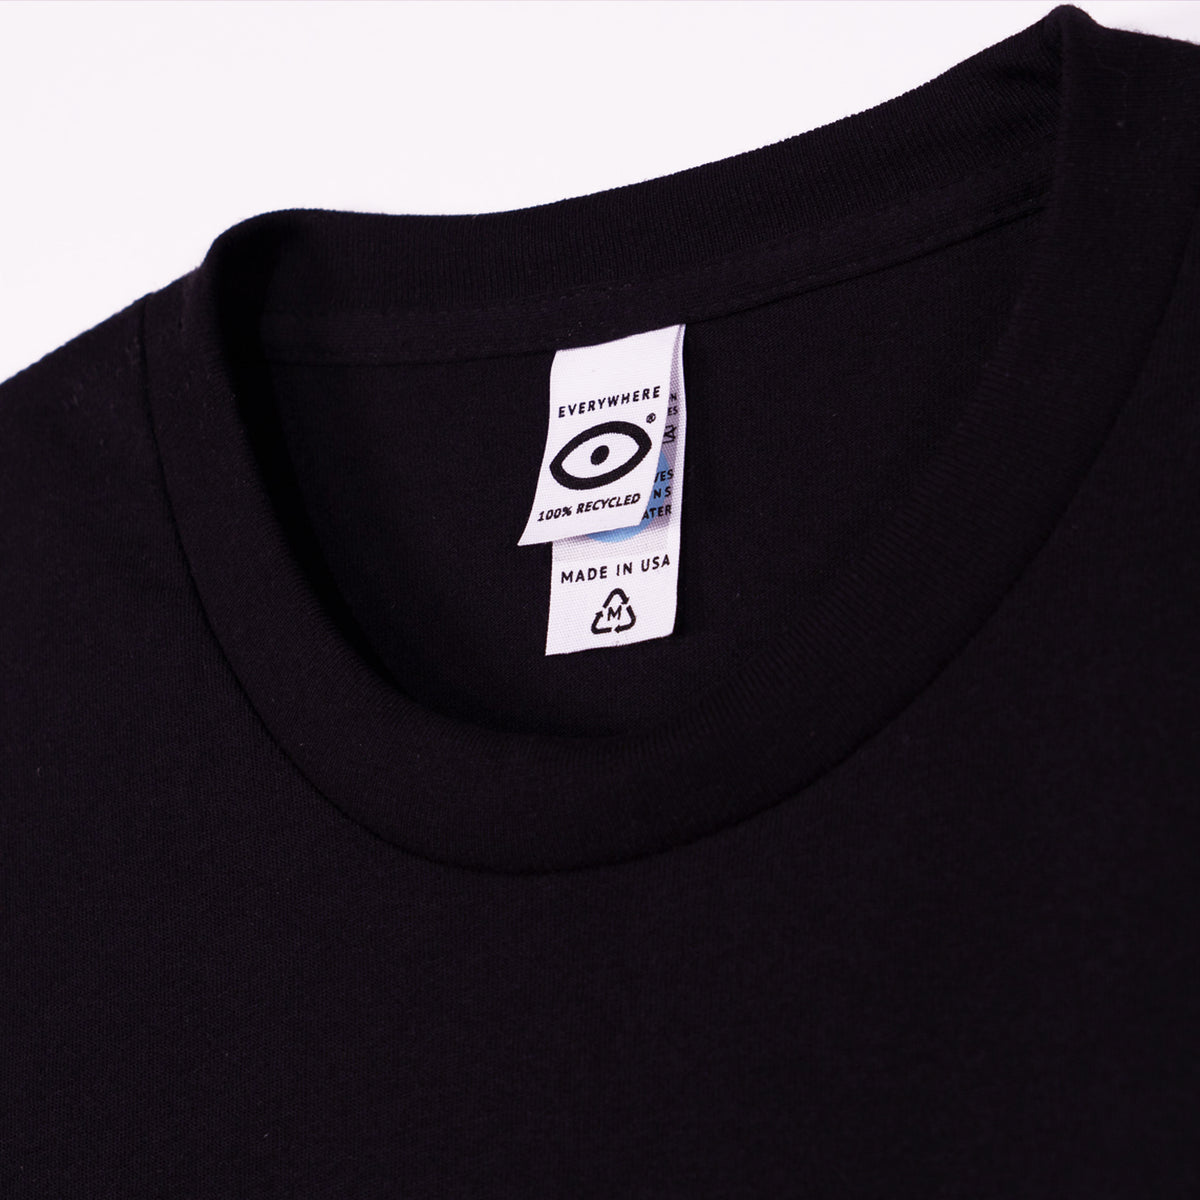 Recycled Cotton Long Sleeve T-Shirt